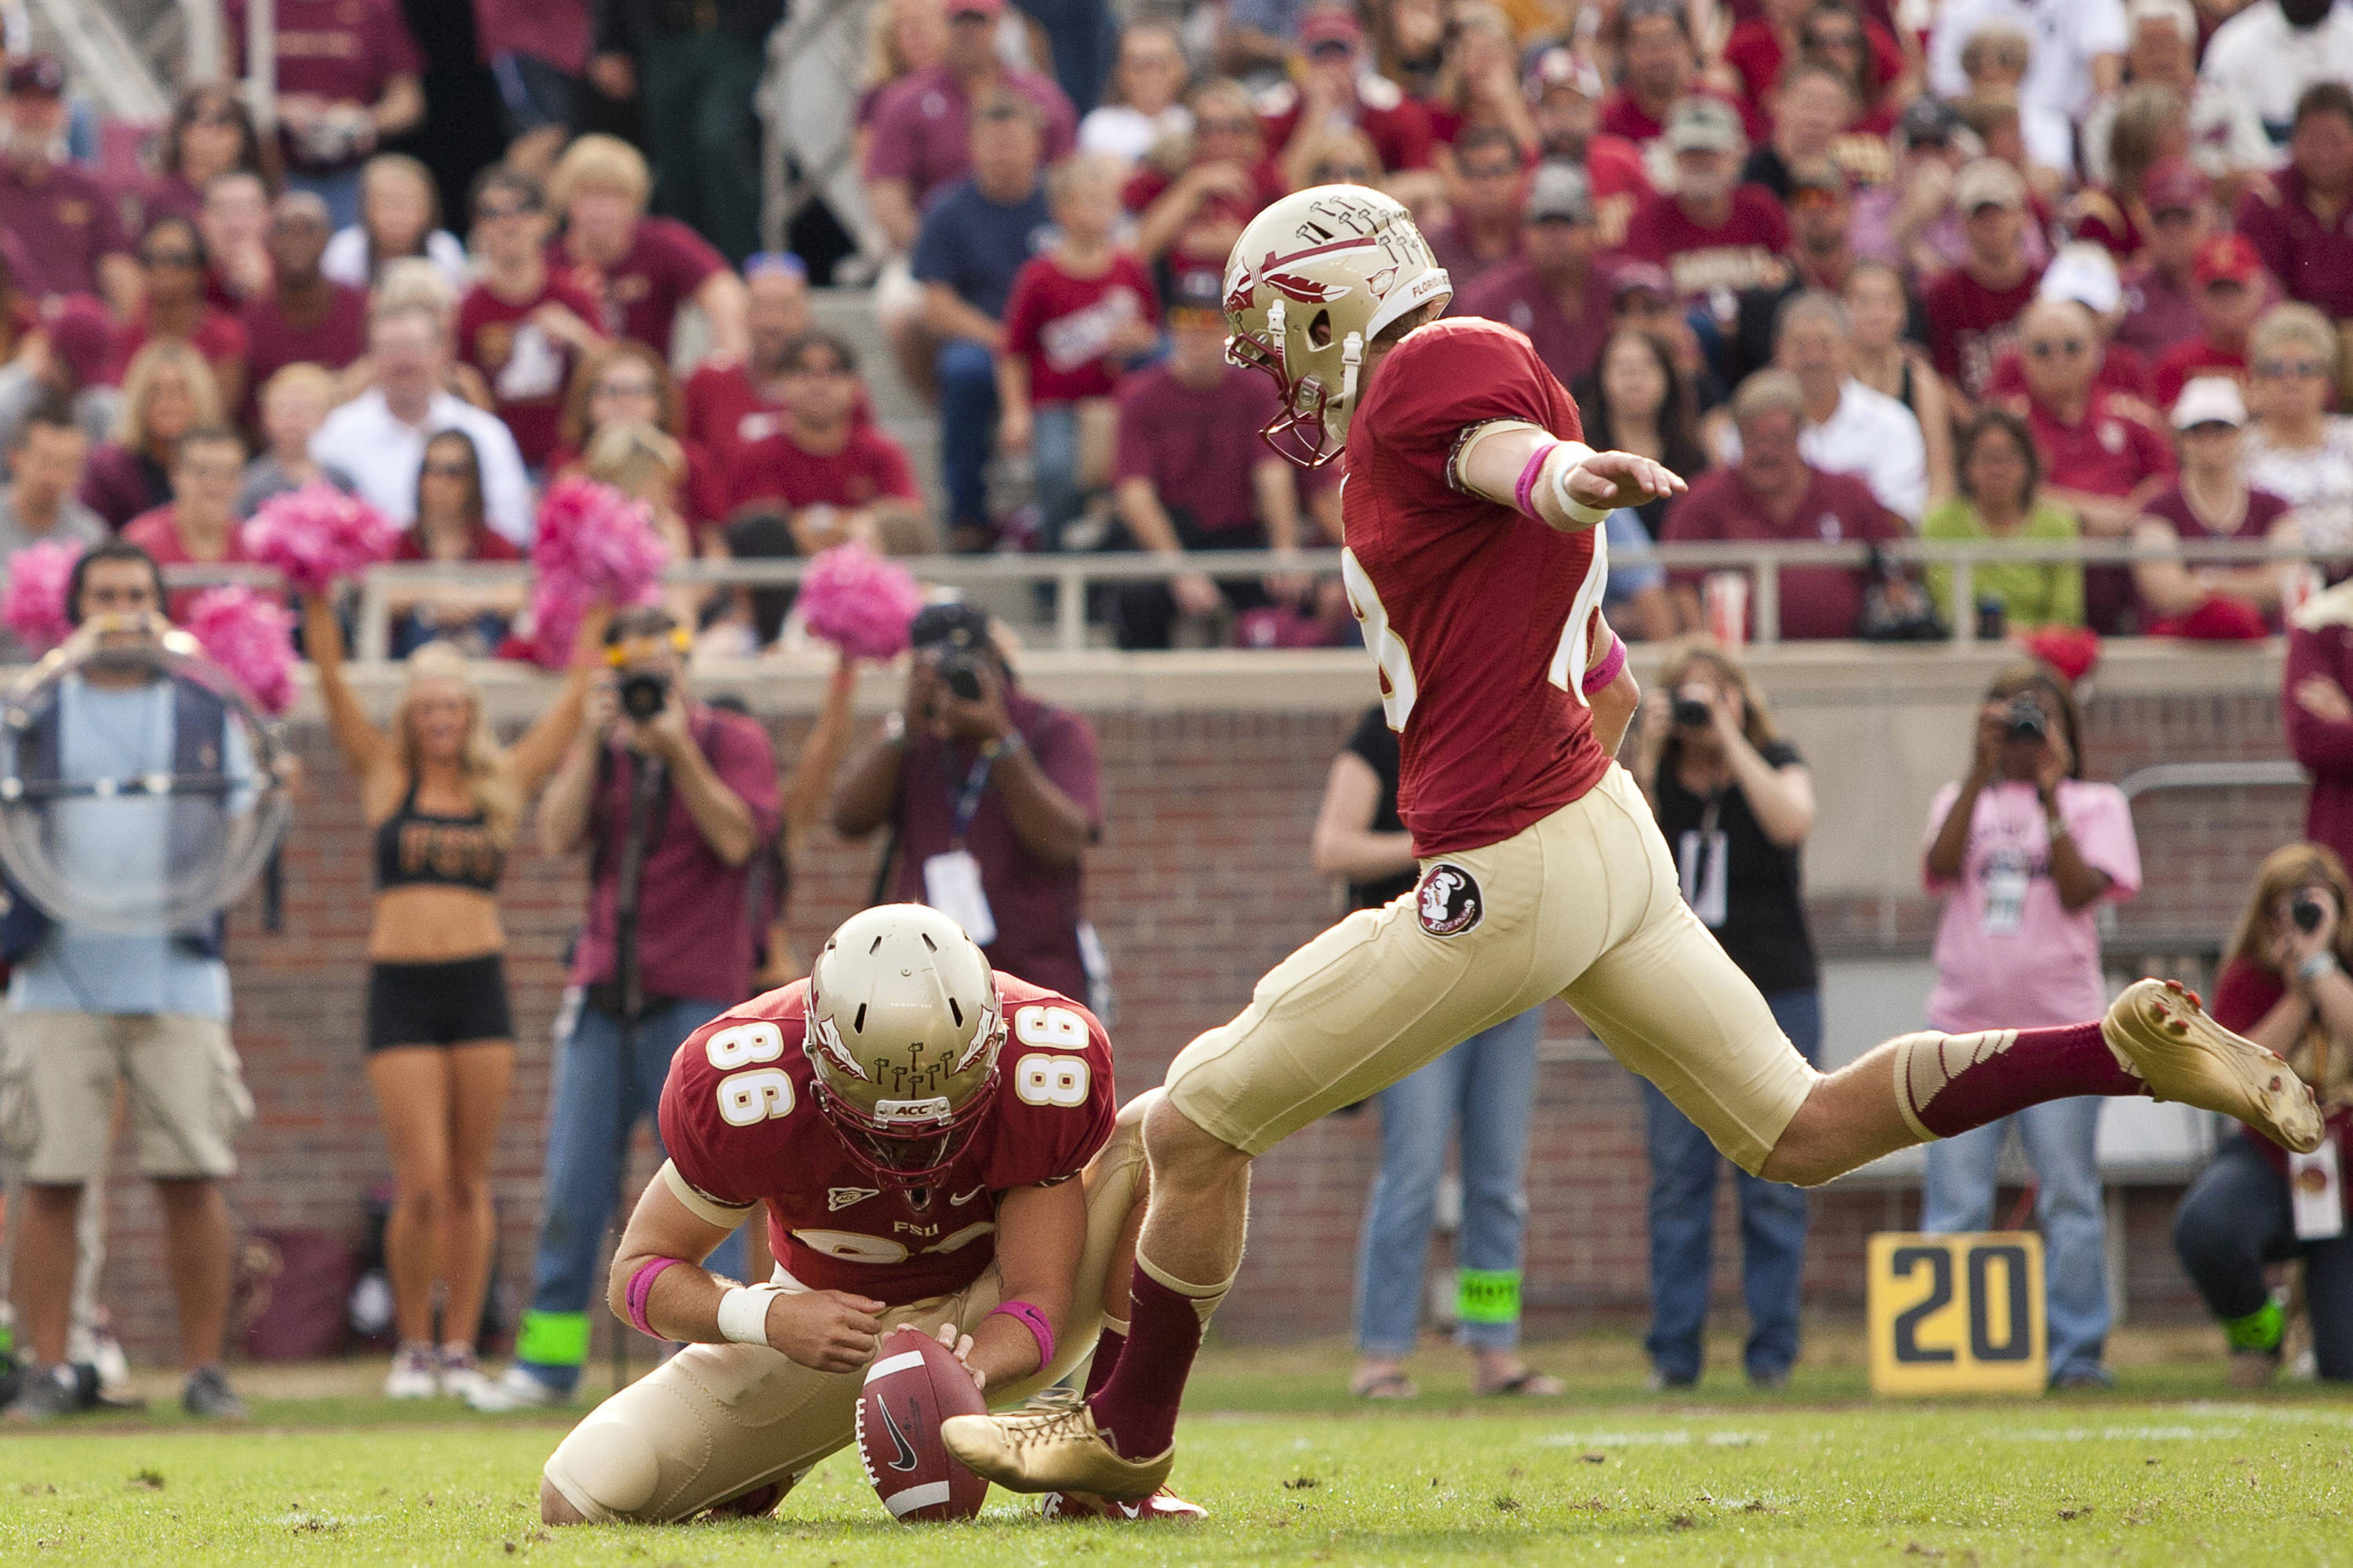 Chris Revell (86) holds the ball for Dustin Hopkins (18) during FSU's 48-7 victory over Duke on October 27, 2012 in Tallahassee, Fla.